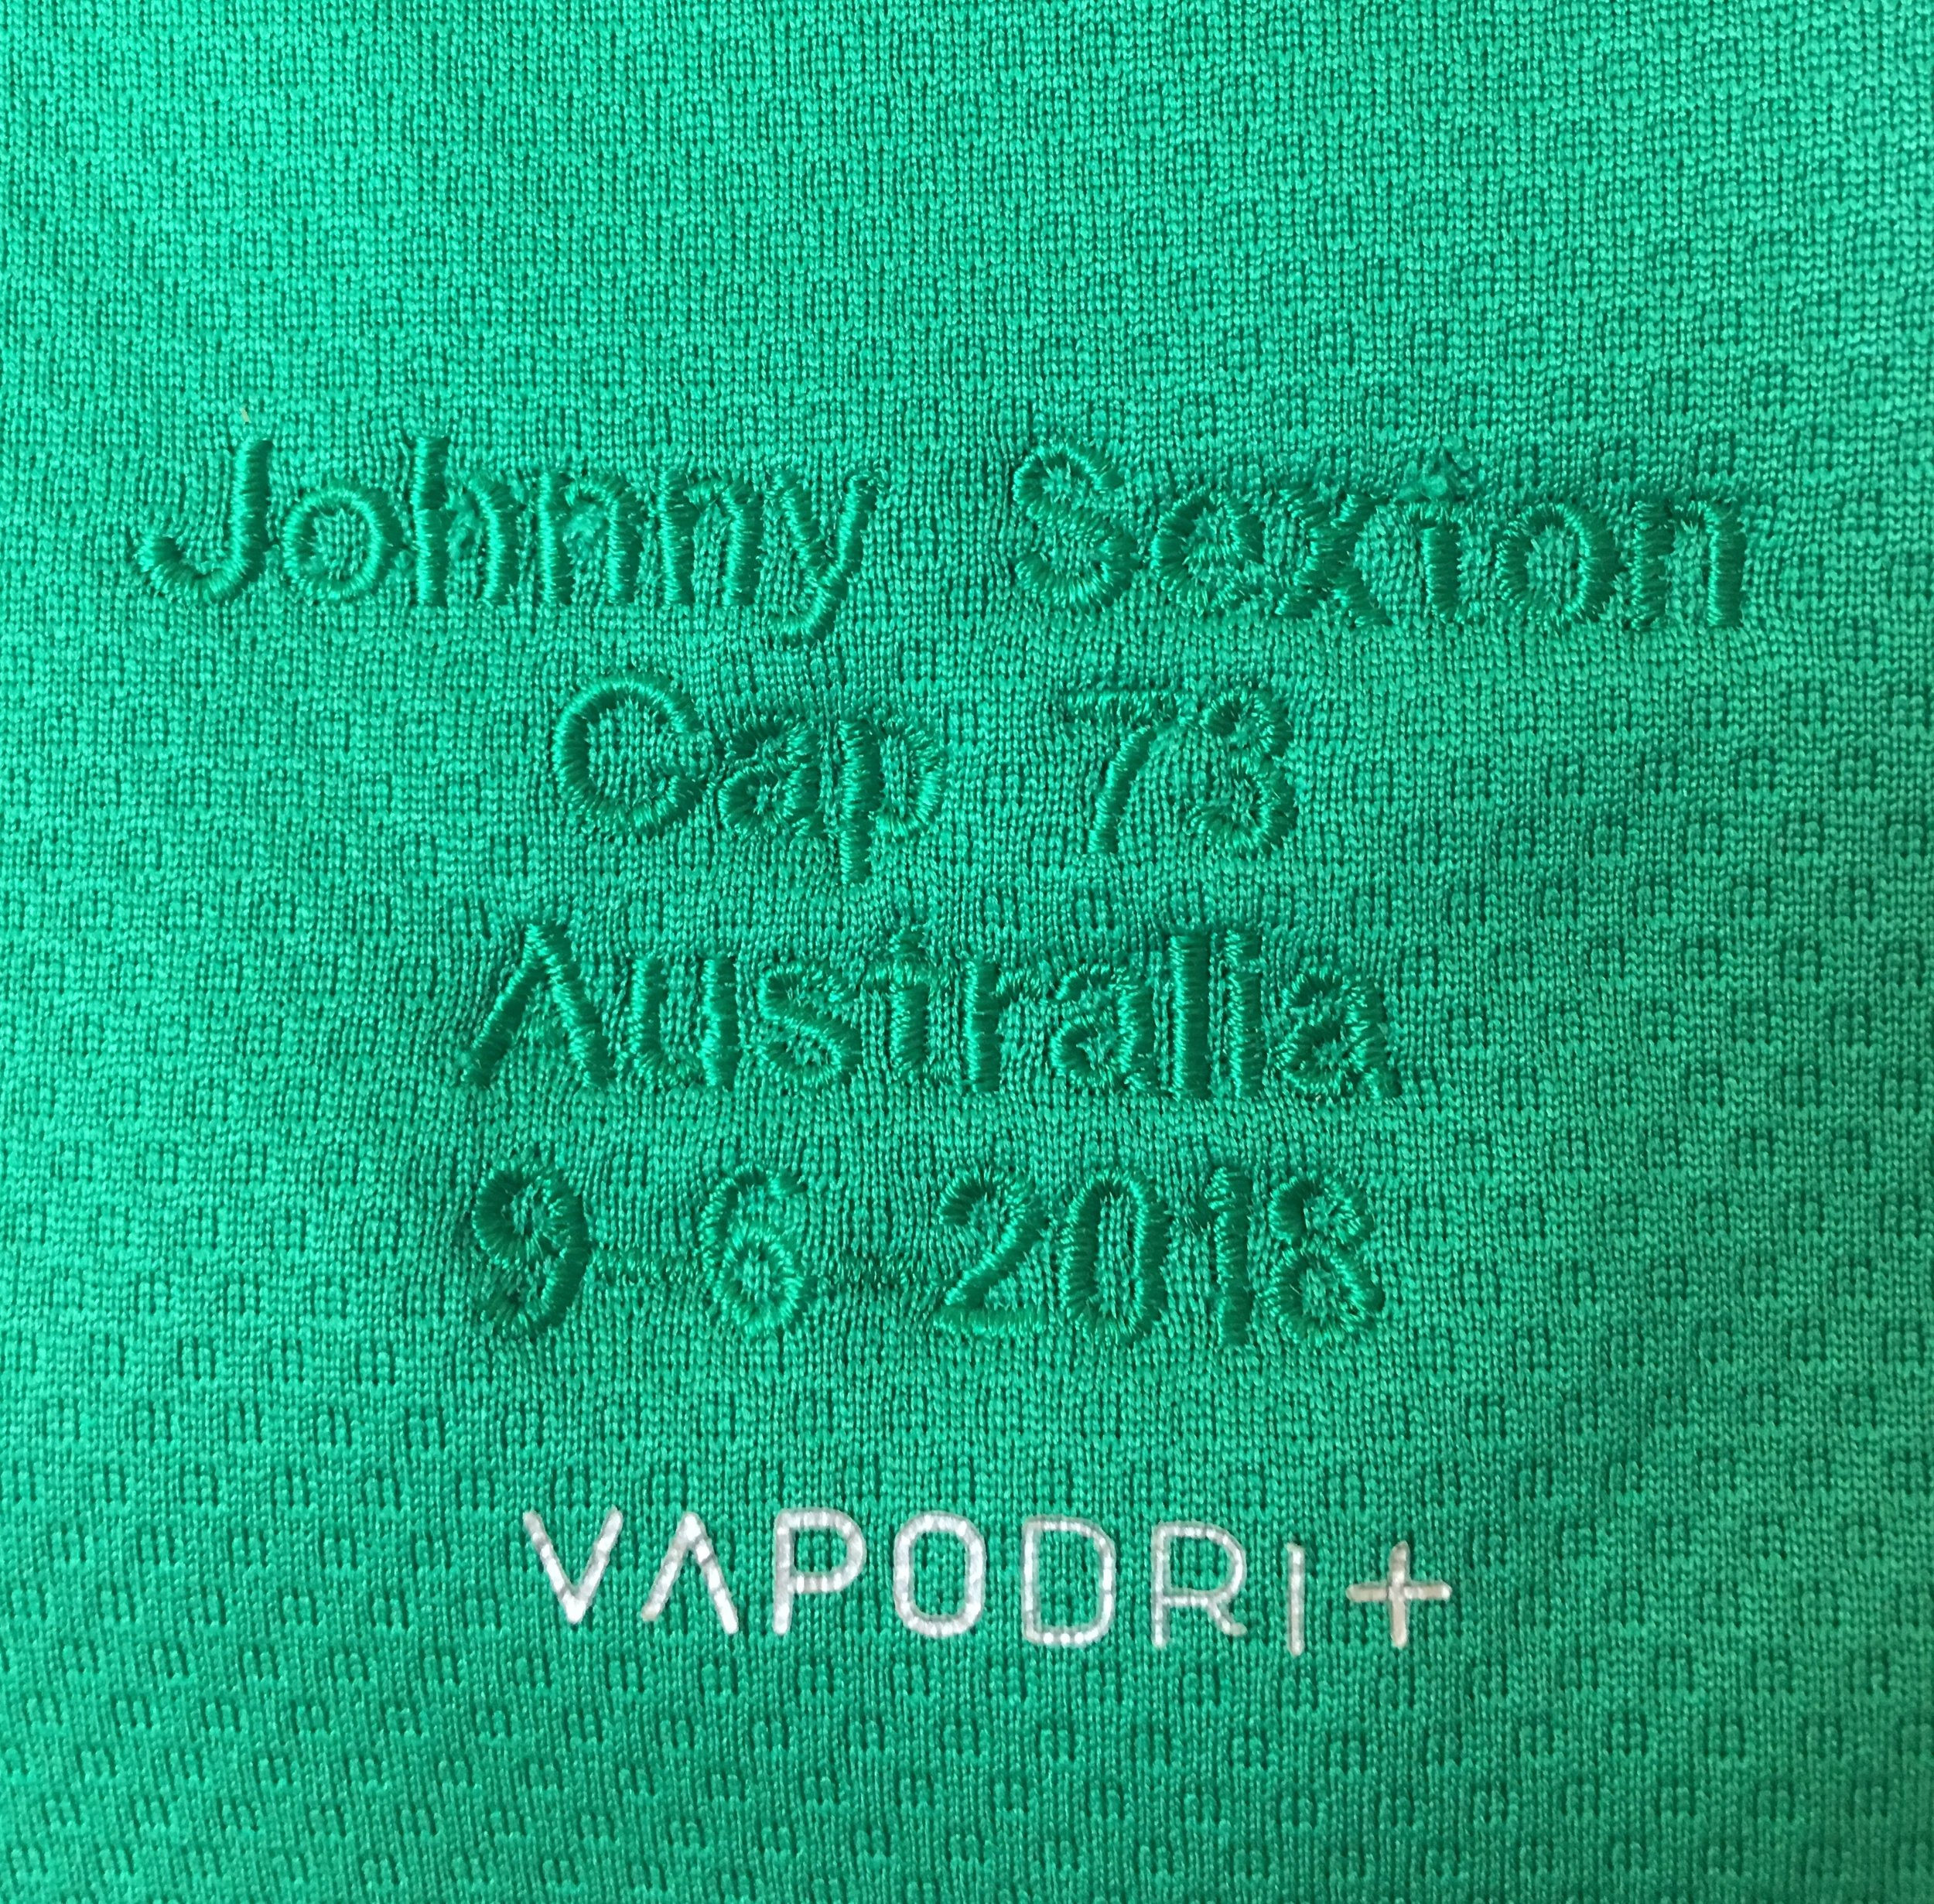 Johnny Sexton, official test day match jersey, vs. Australia, June 2018